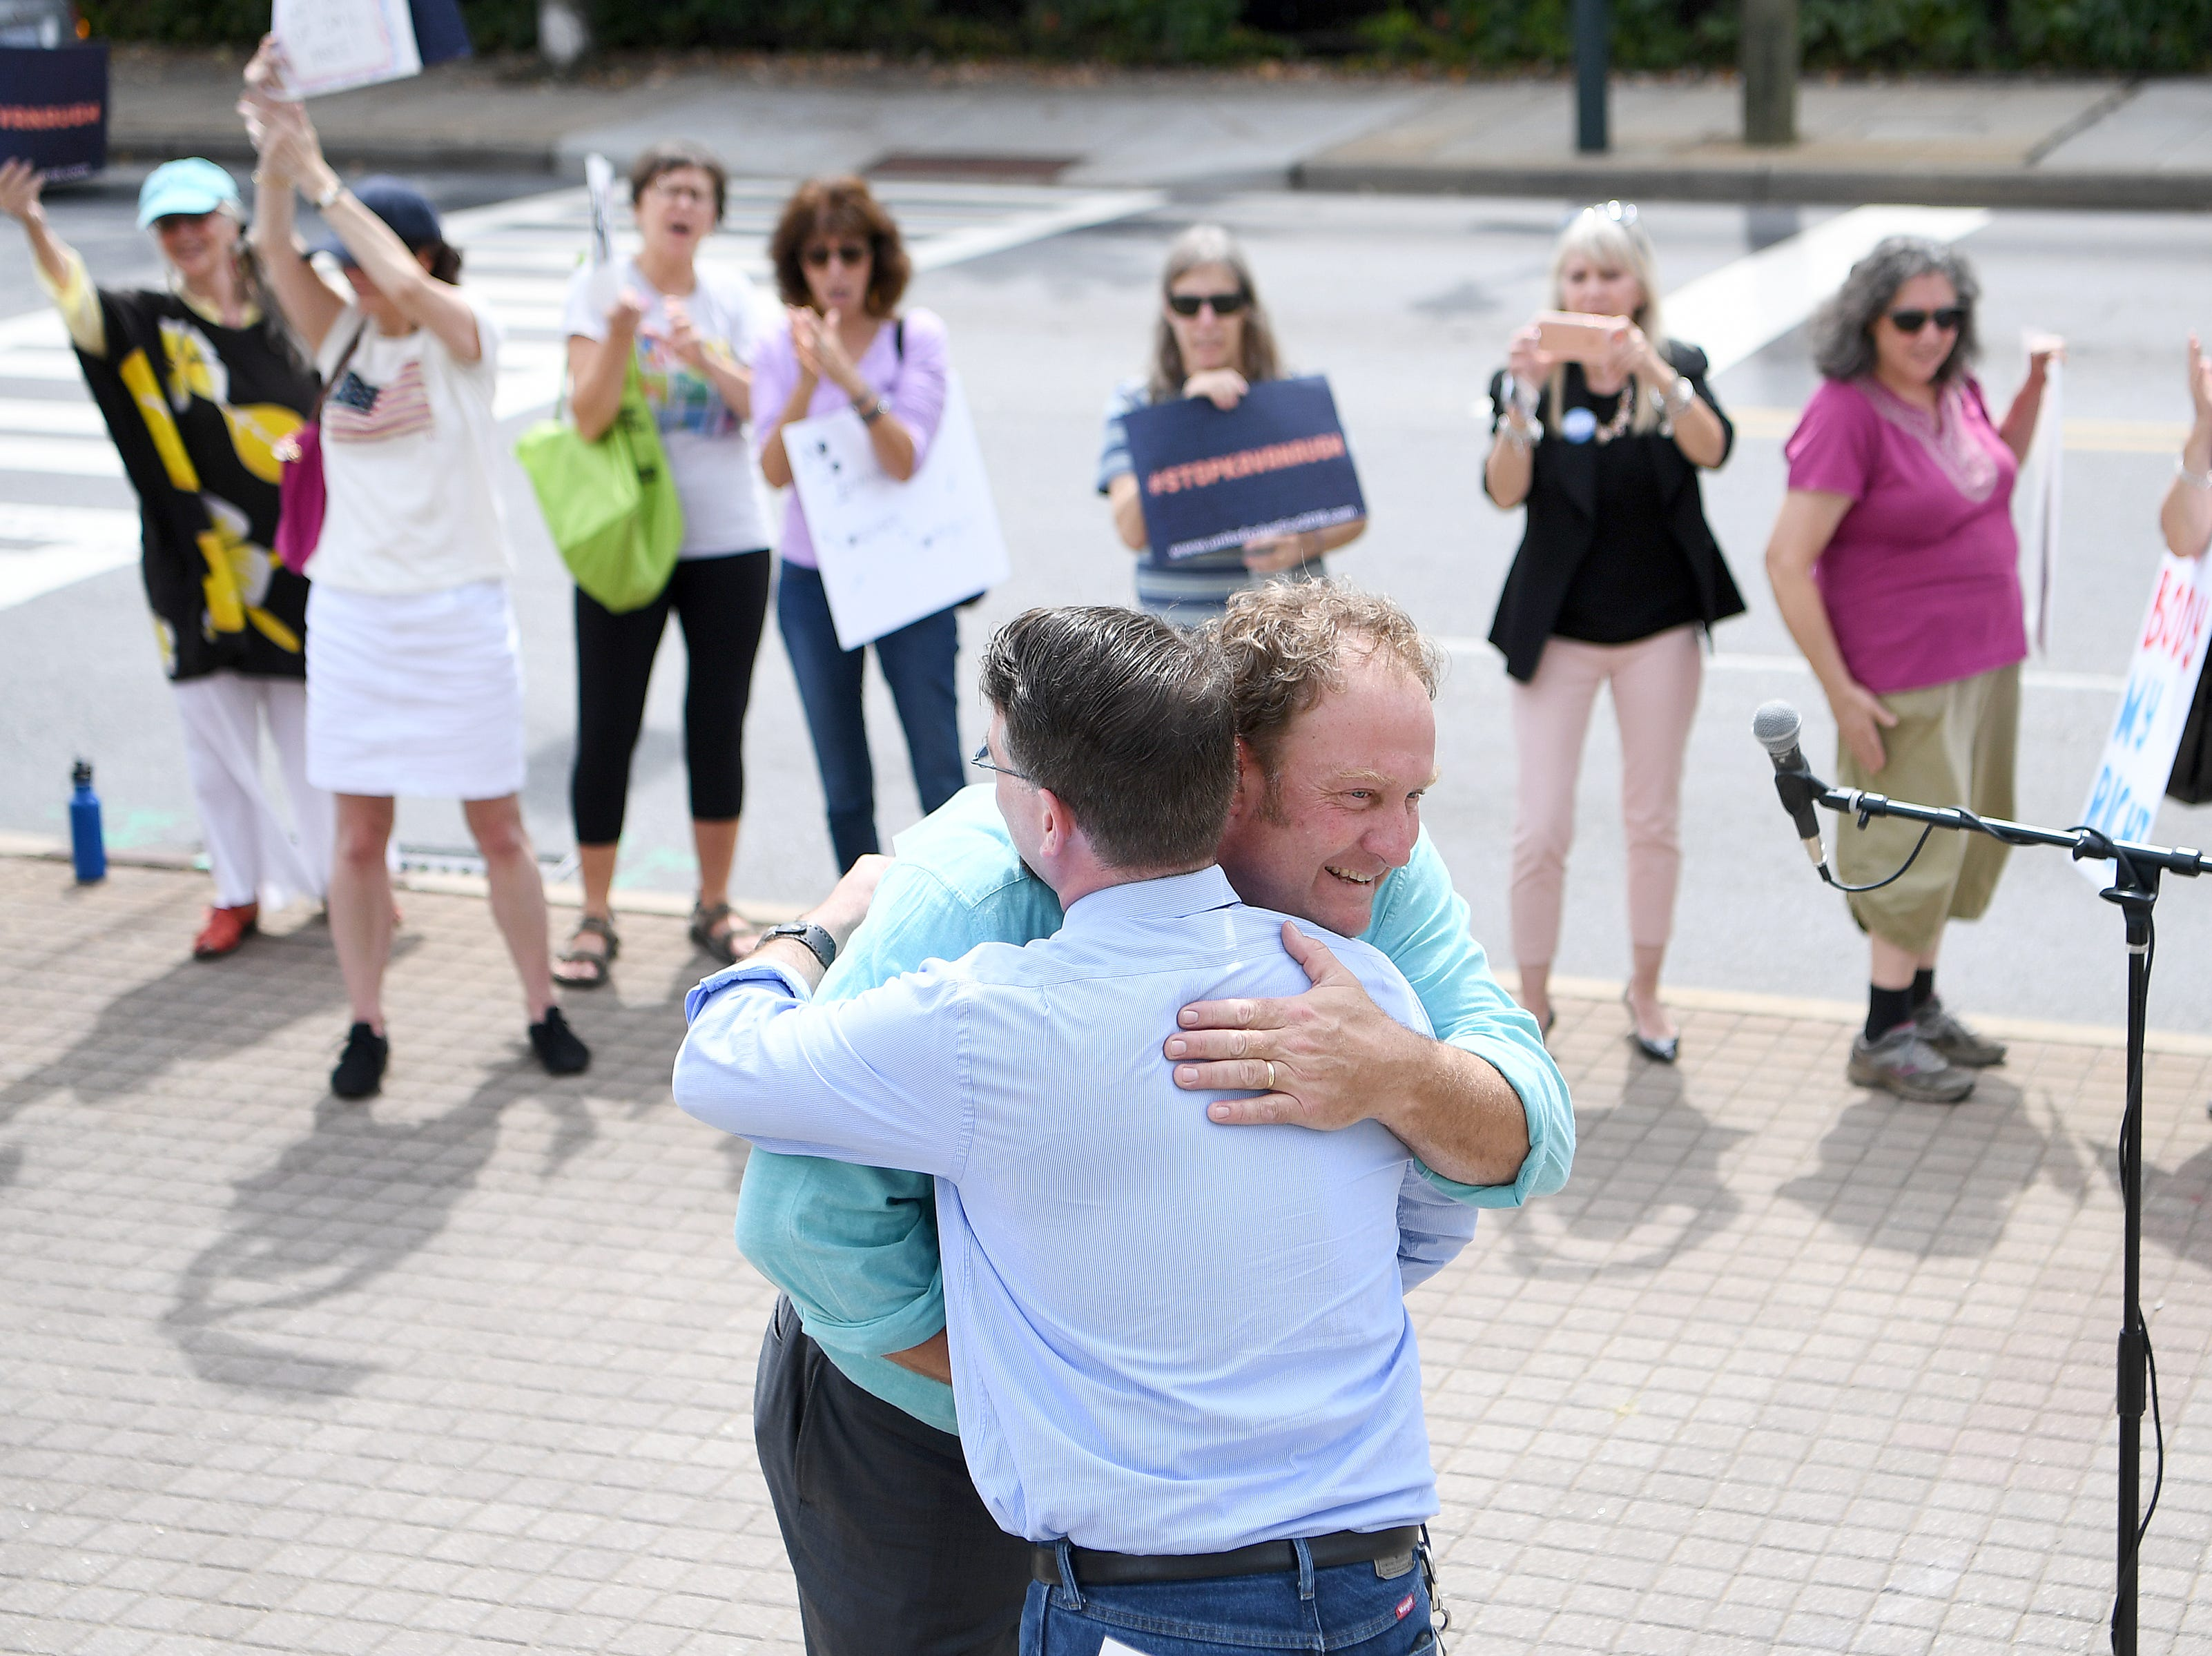 Congressional candidate Phillip Price, hugs Catori Swann, president of the Progressive Democrats of Buncombe County, before addressing the crowd during a protest against the hearing of Supreme Court nominee Judge Brett Kavanaugh in front of the federal building downtown on Wednesday, Sept. 5, 2018.